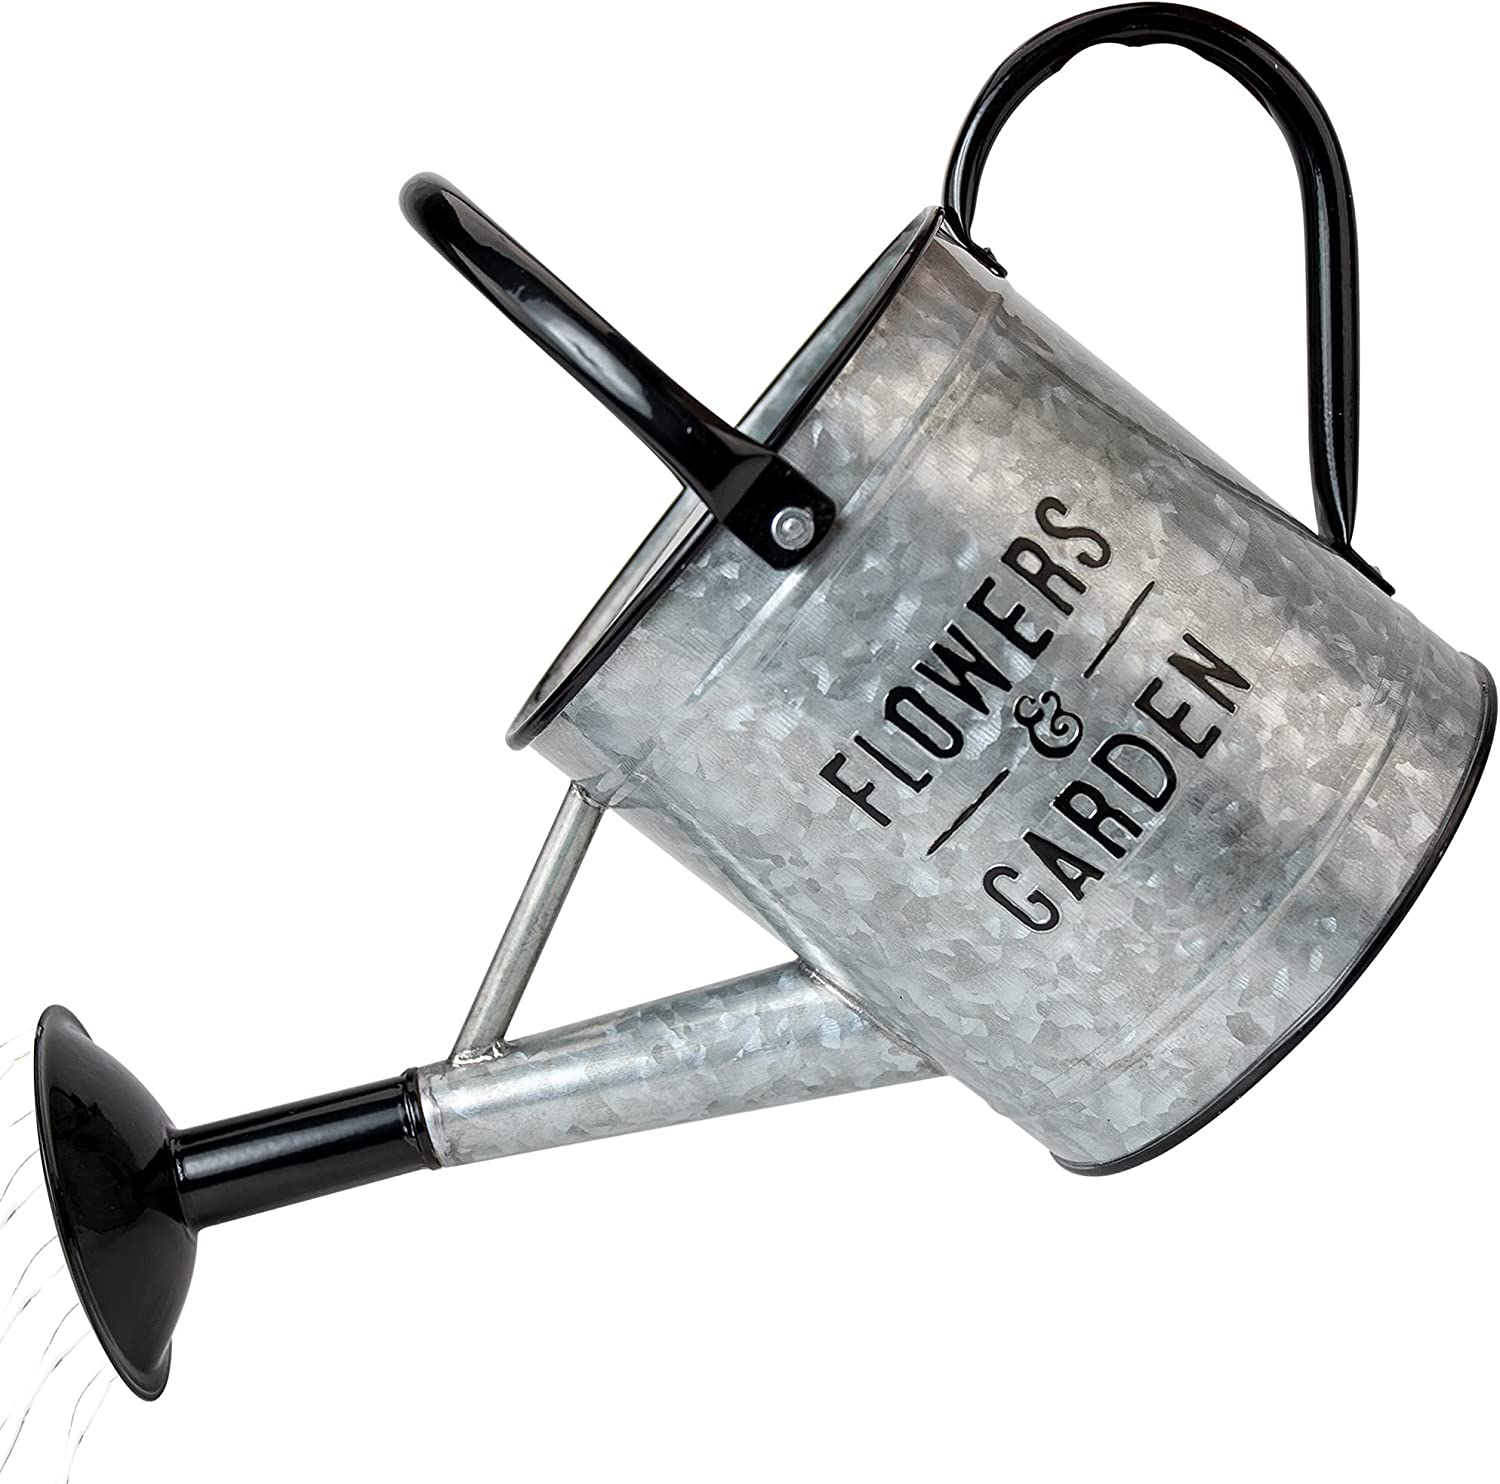 KIBAGA Beautiful Galvanized Watering Can - Decorative 85oz Farmhouse Style Watering Can with Easy Pour Over Sprinkler Spout for Fast and Easy Plant Watering - Perfect for Indoor and Outdoor Use